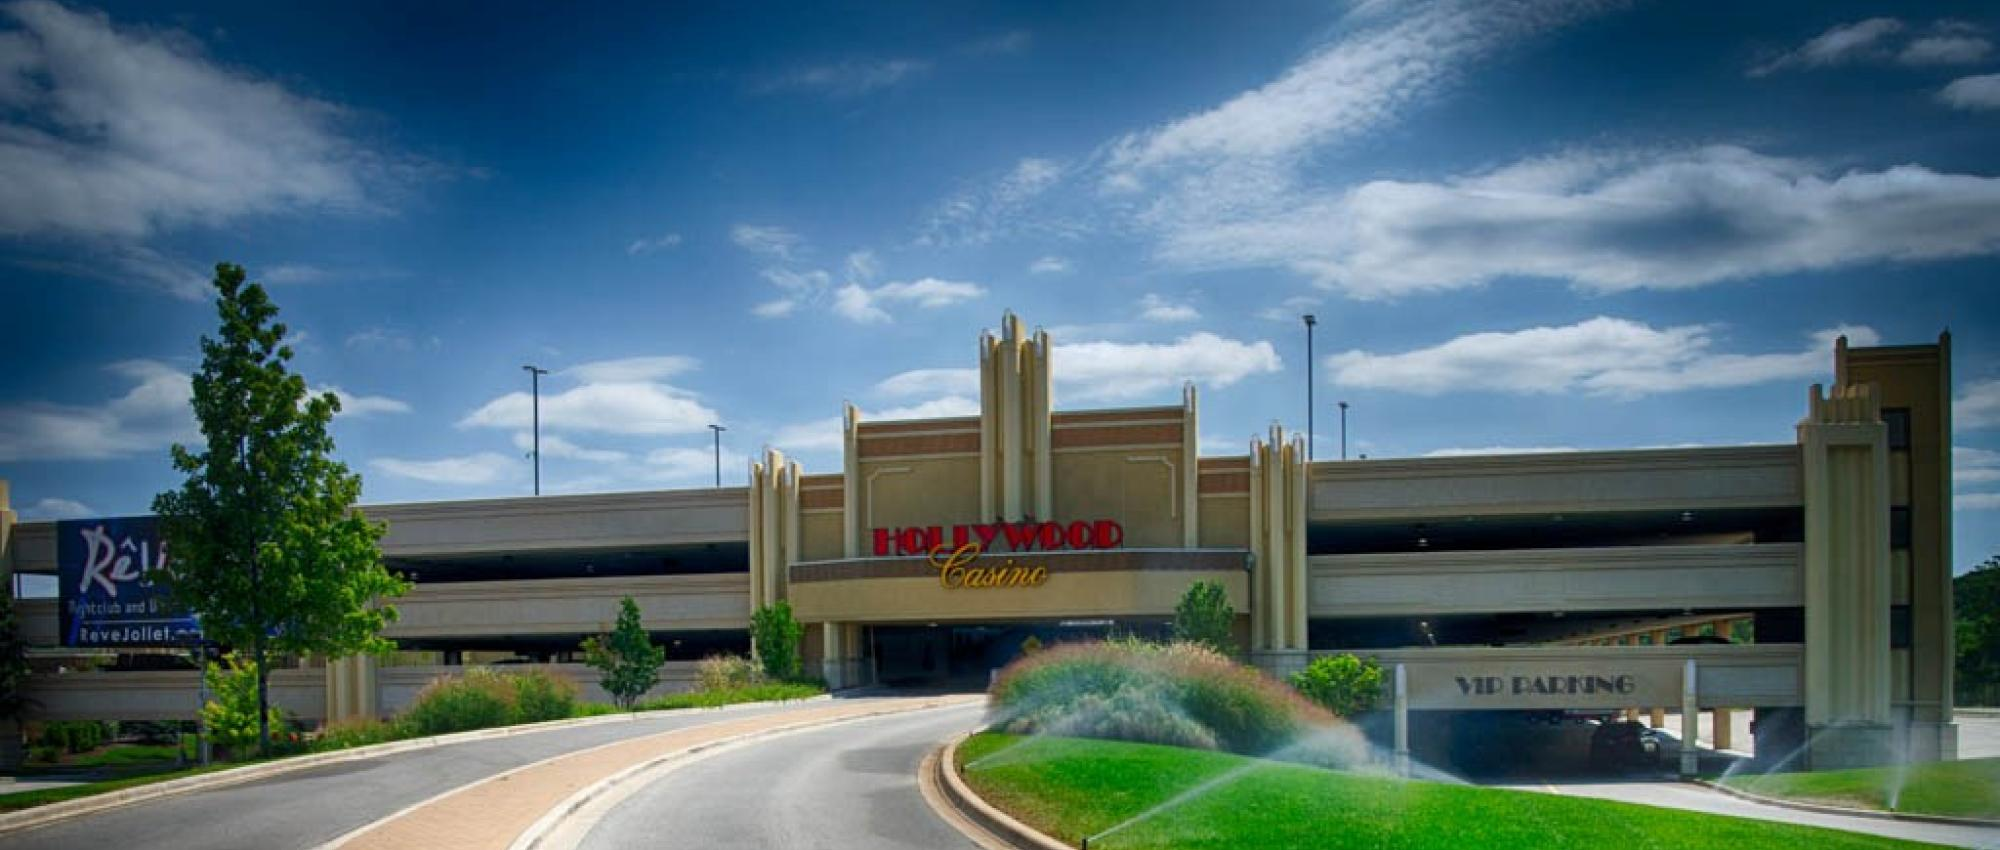 Hollywood Casino front